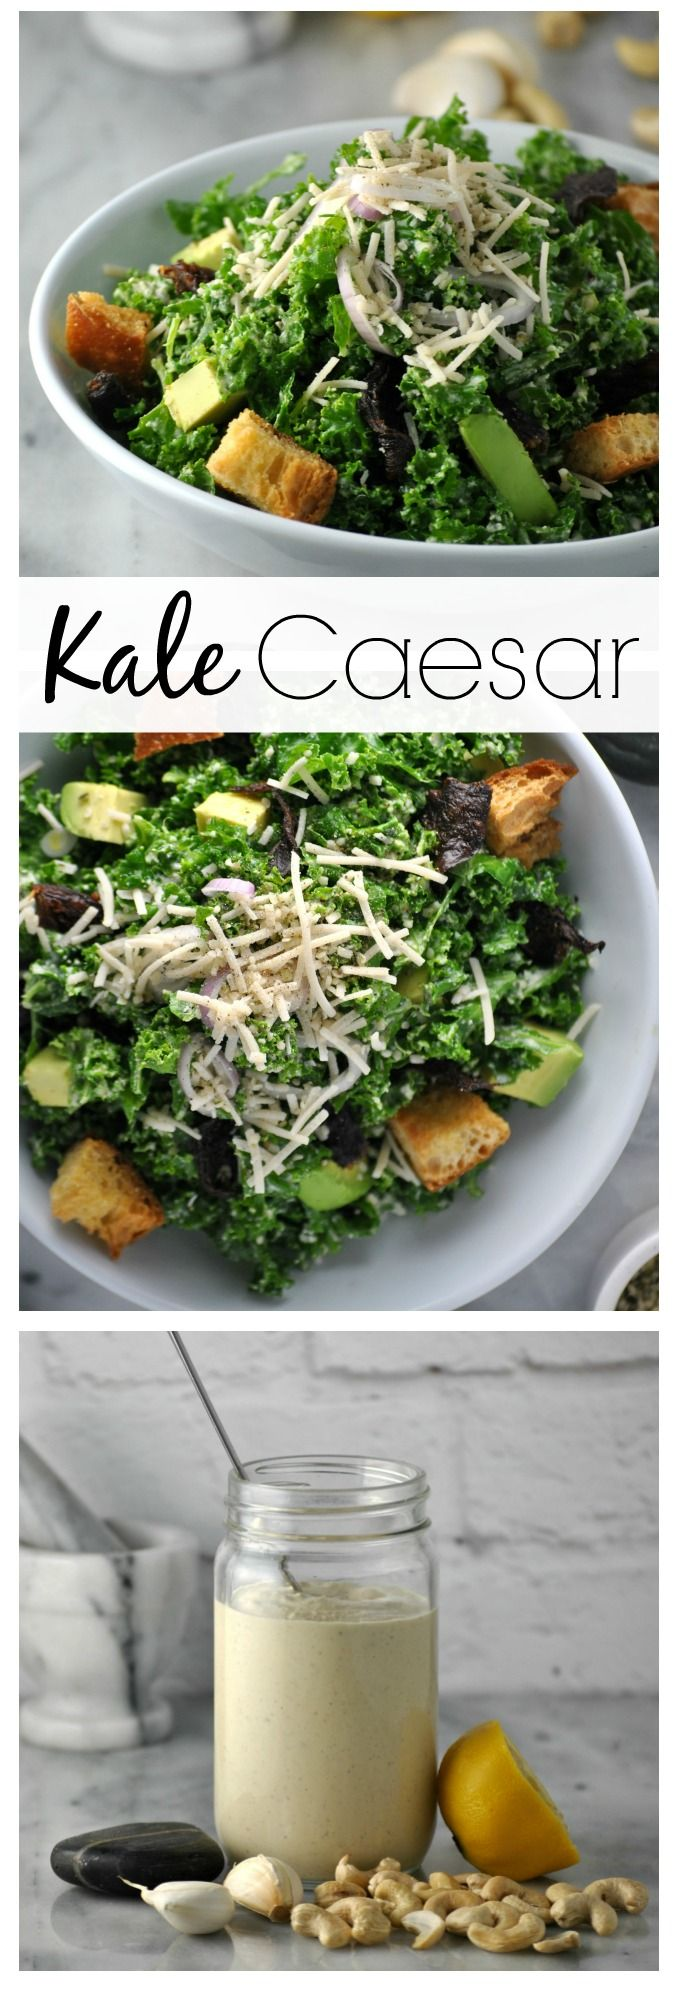 kale caesar salad vegan sauces shiitake salad recipes bacon dressing ...